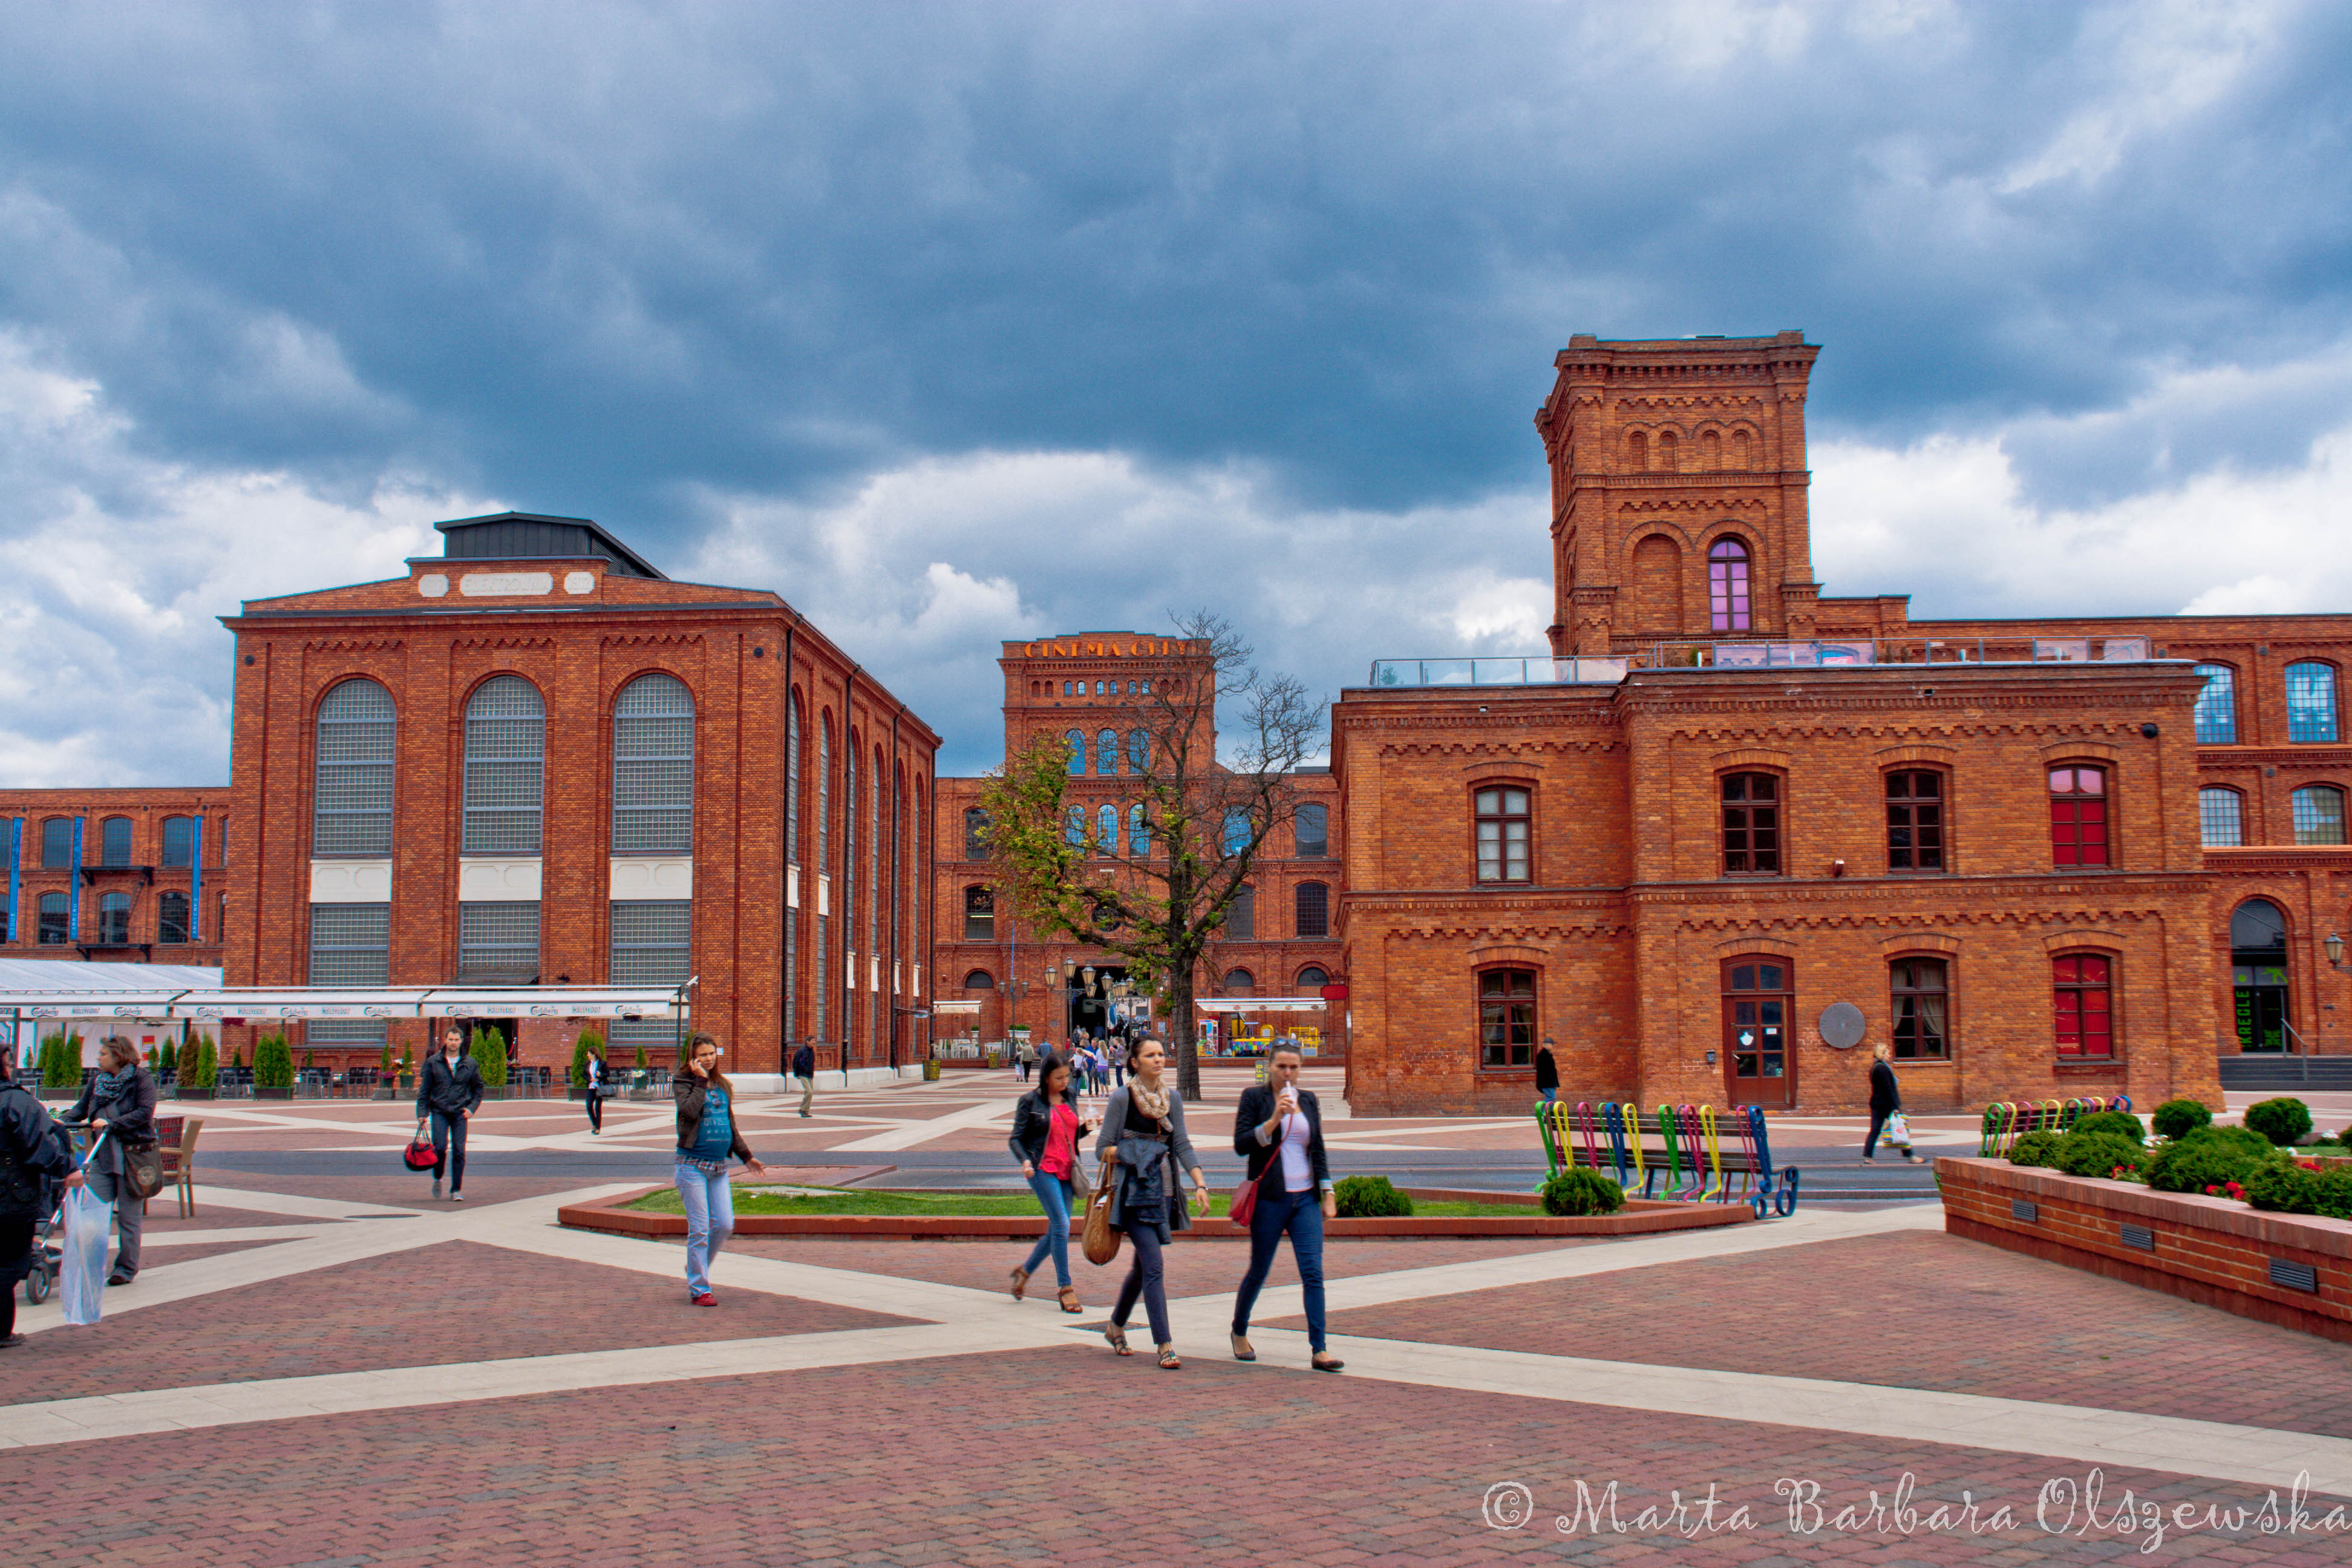 Tum Church Excursions from Warsaw, AB Poland Travel » Lodz tour from Warsaw